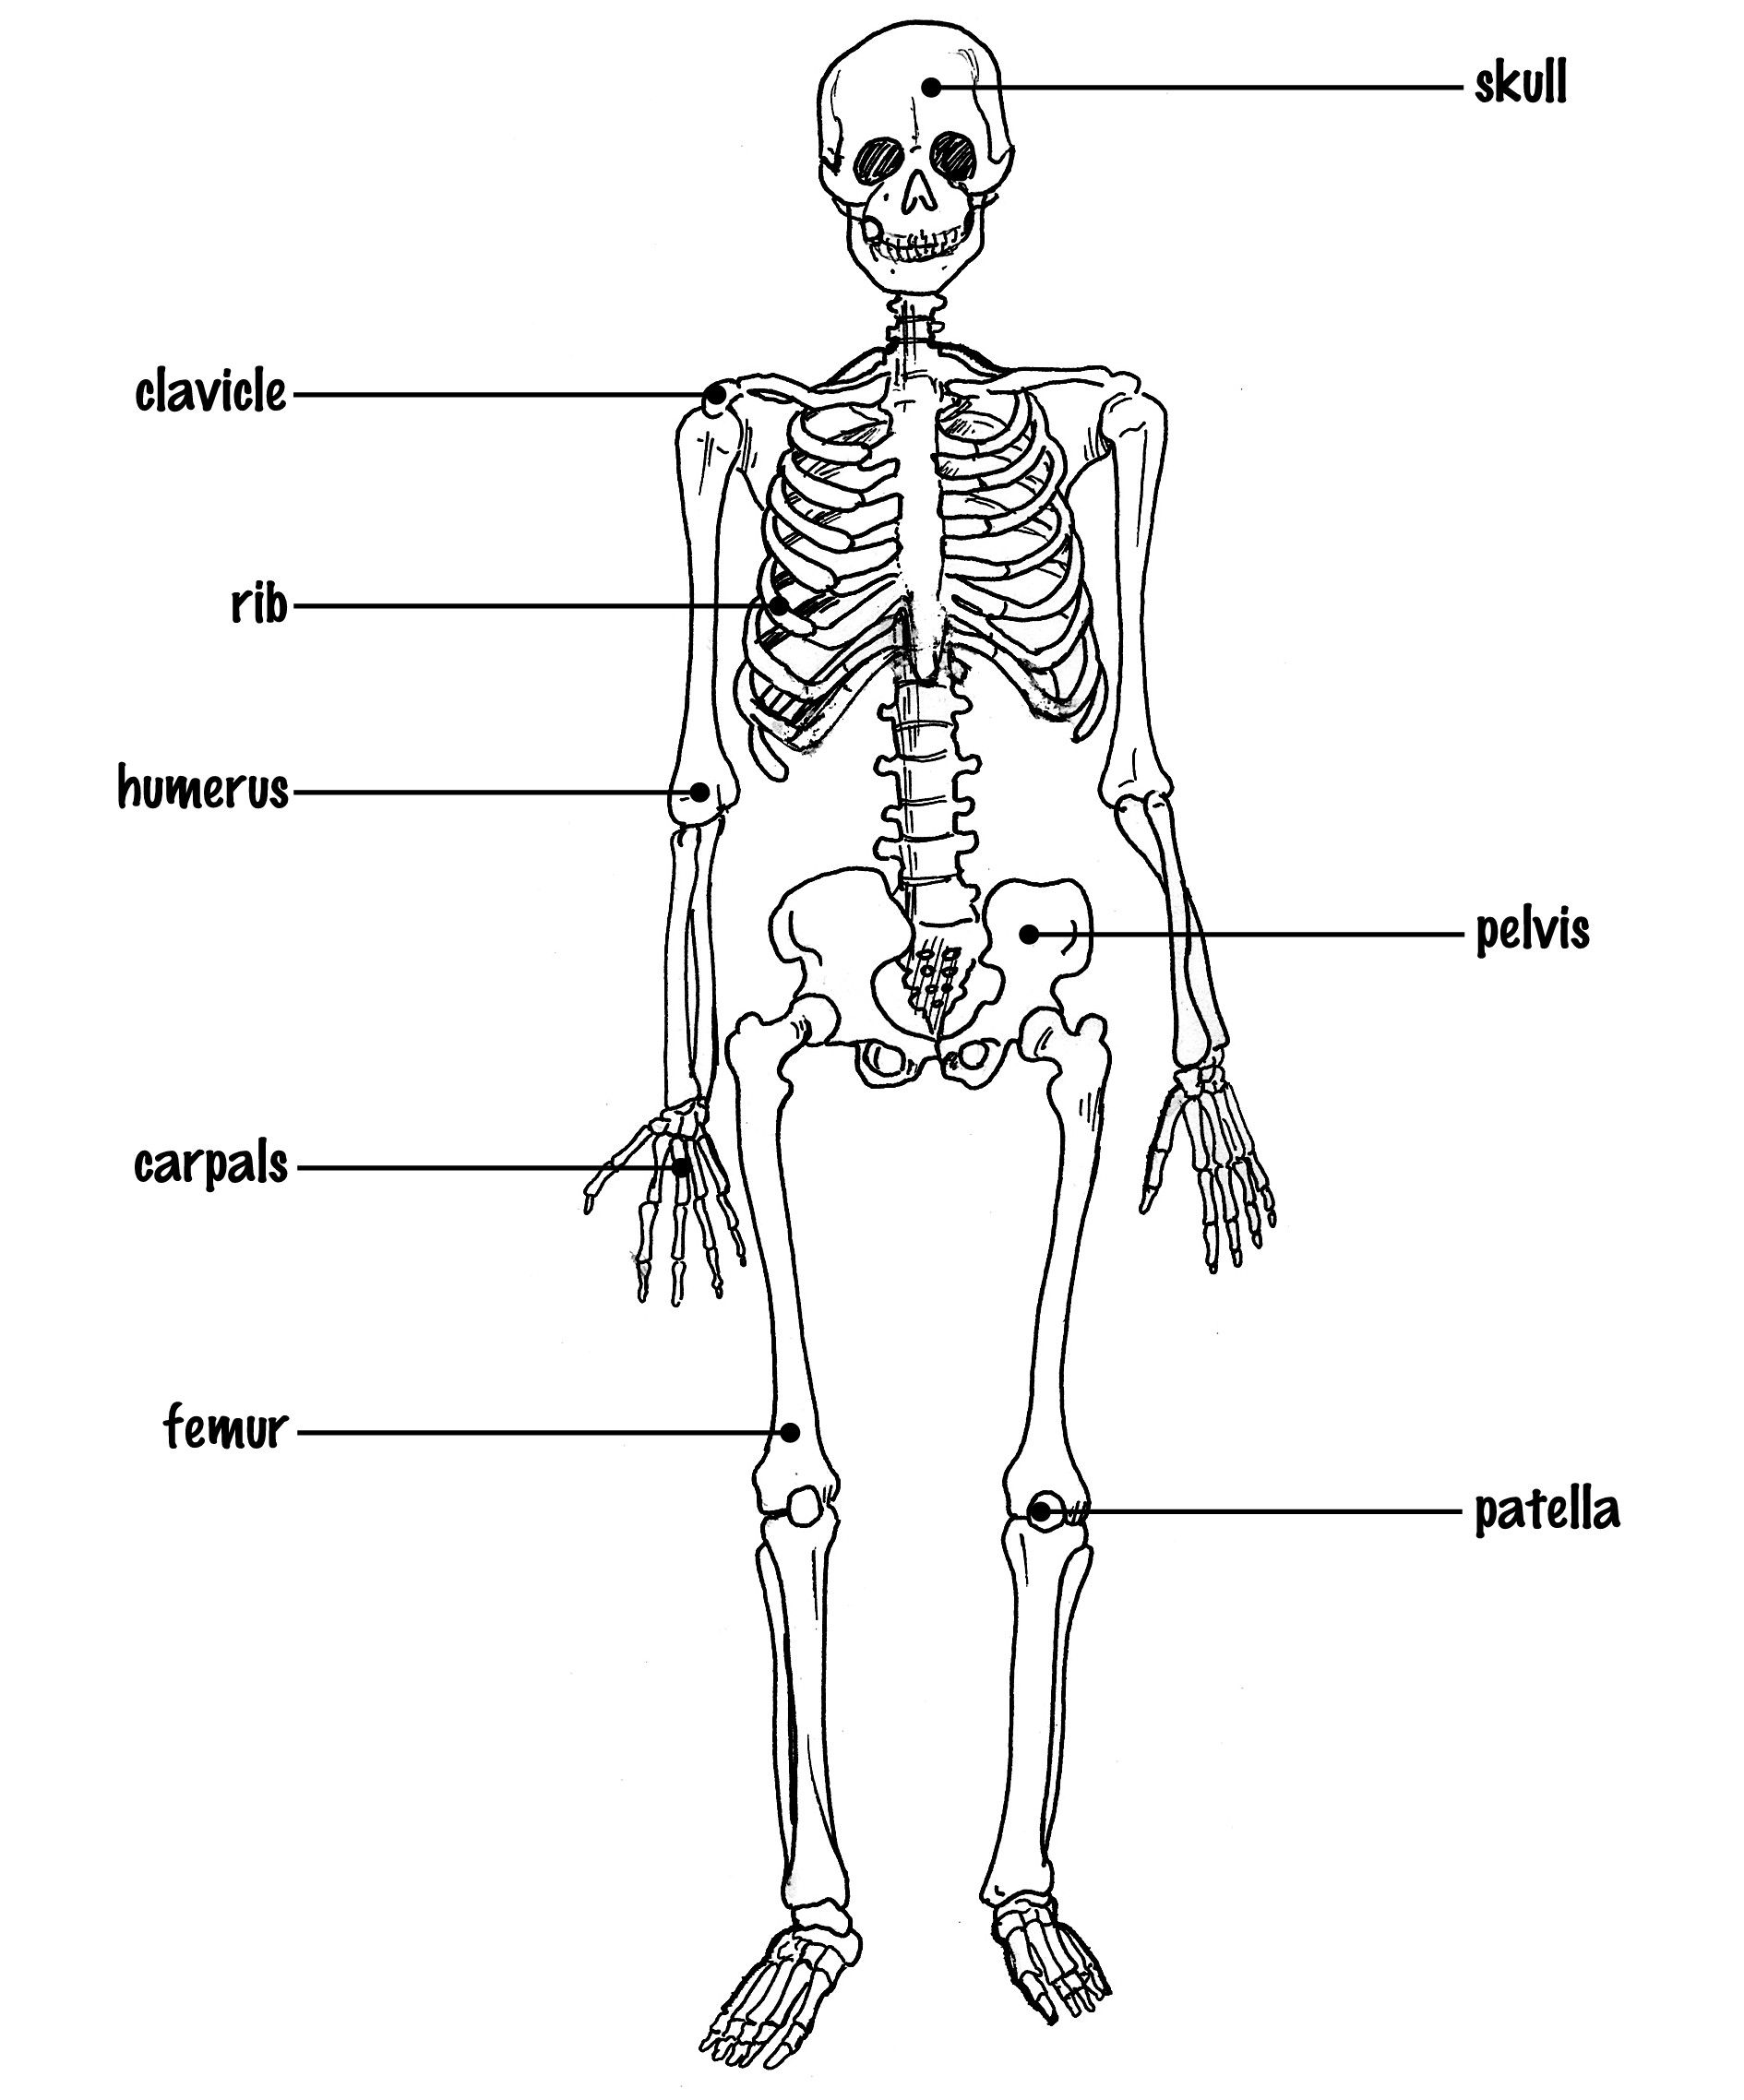 Human Skeleton Diagram With Labels Elegant Simple Human